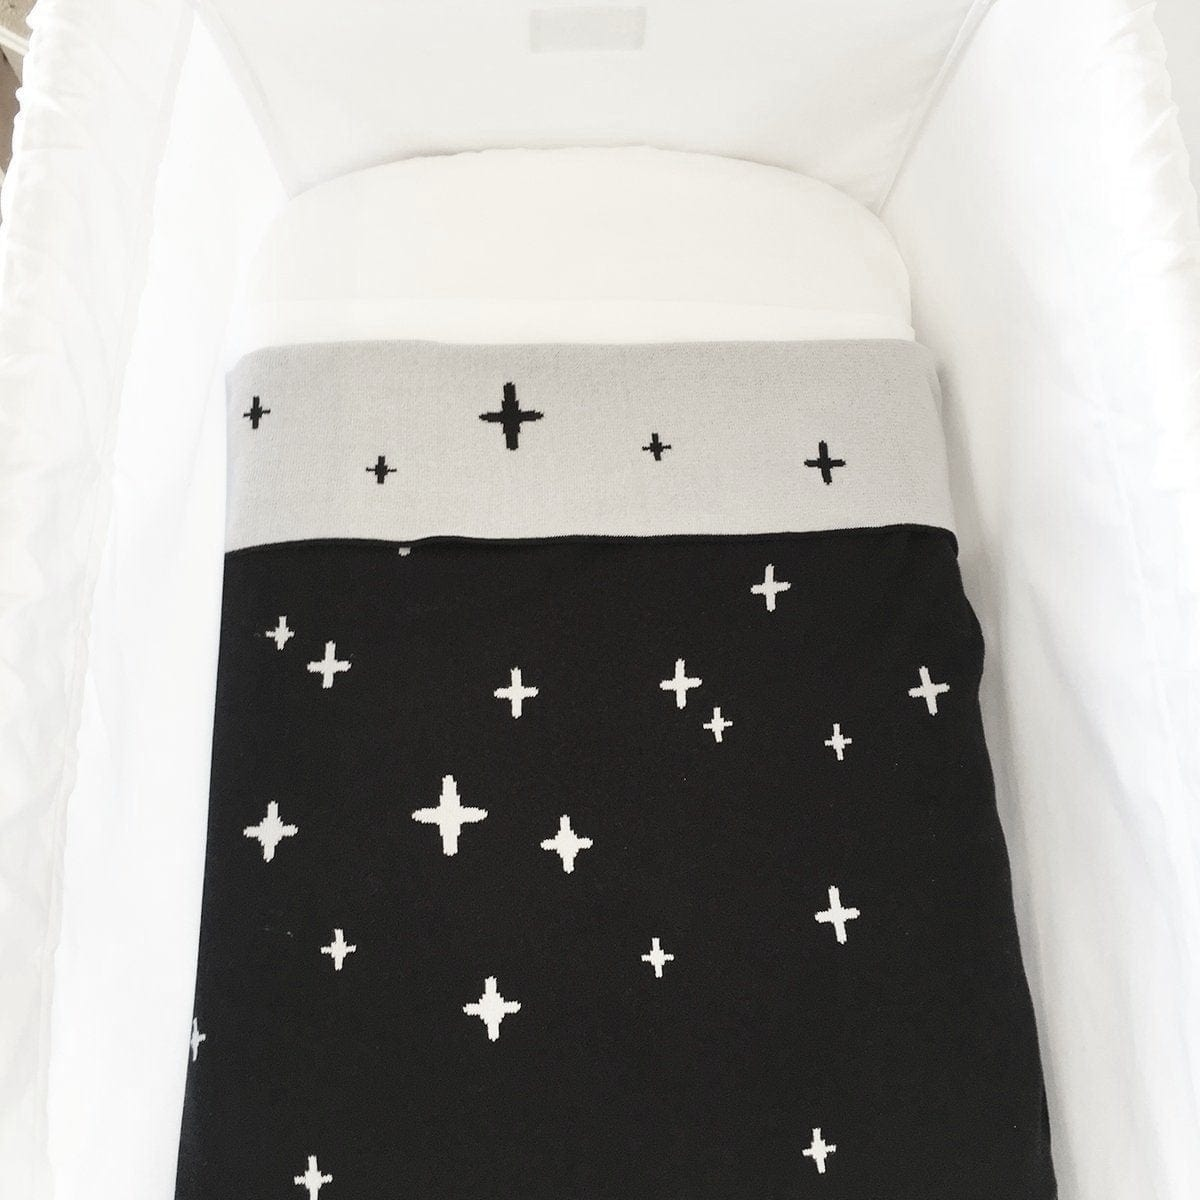 Ecosprout Reversible Cotton Baby Blanket - CROSS Night Sky - Ecosprout - New Zealand